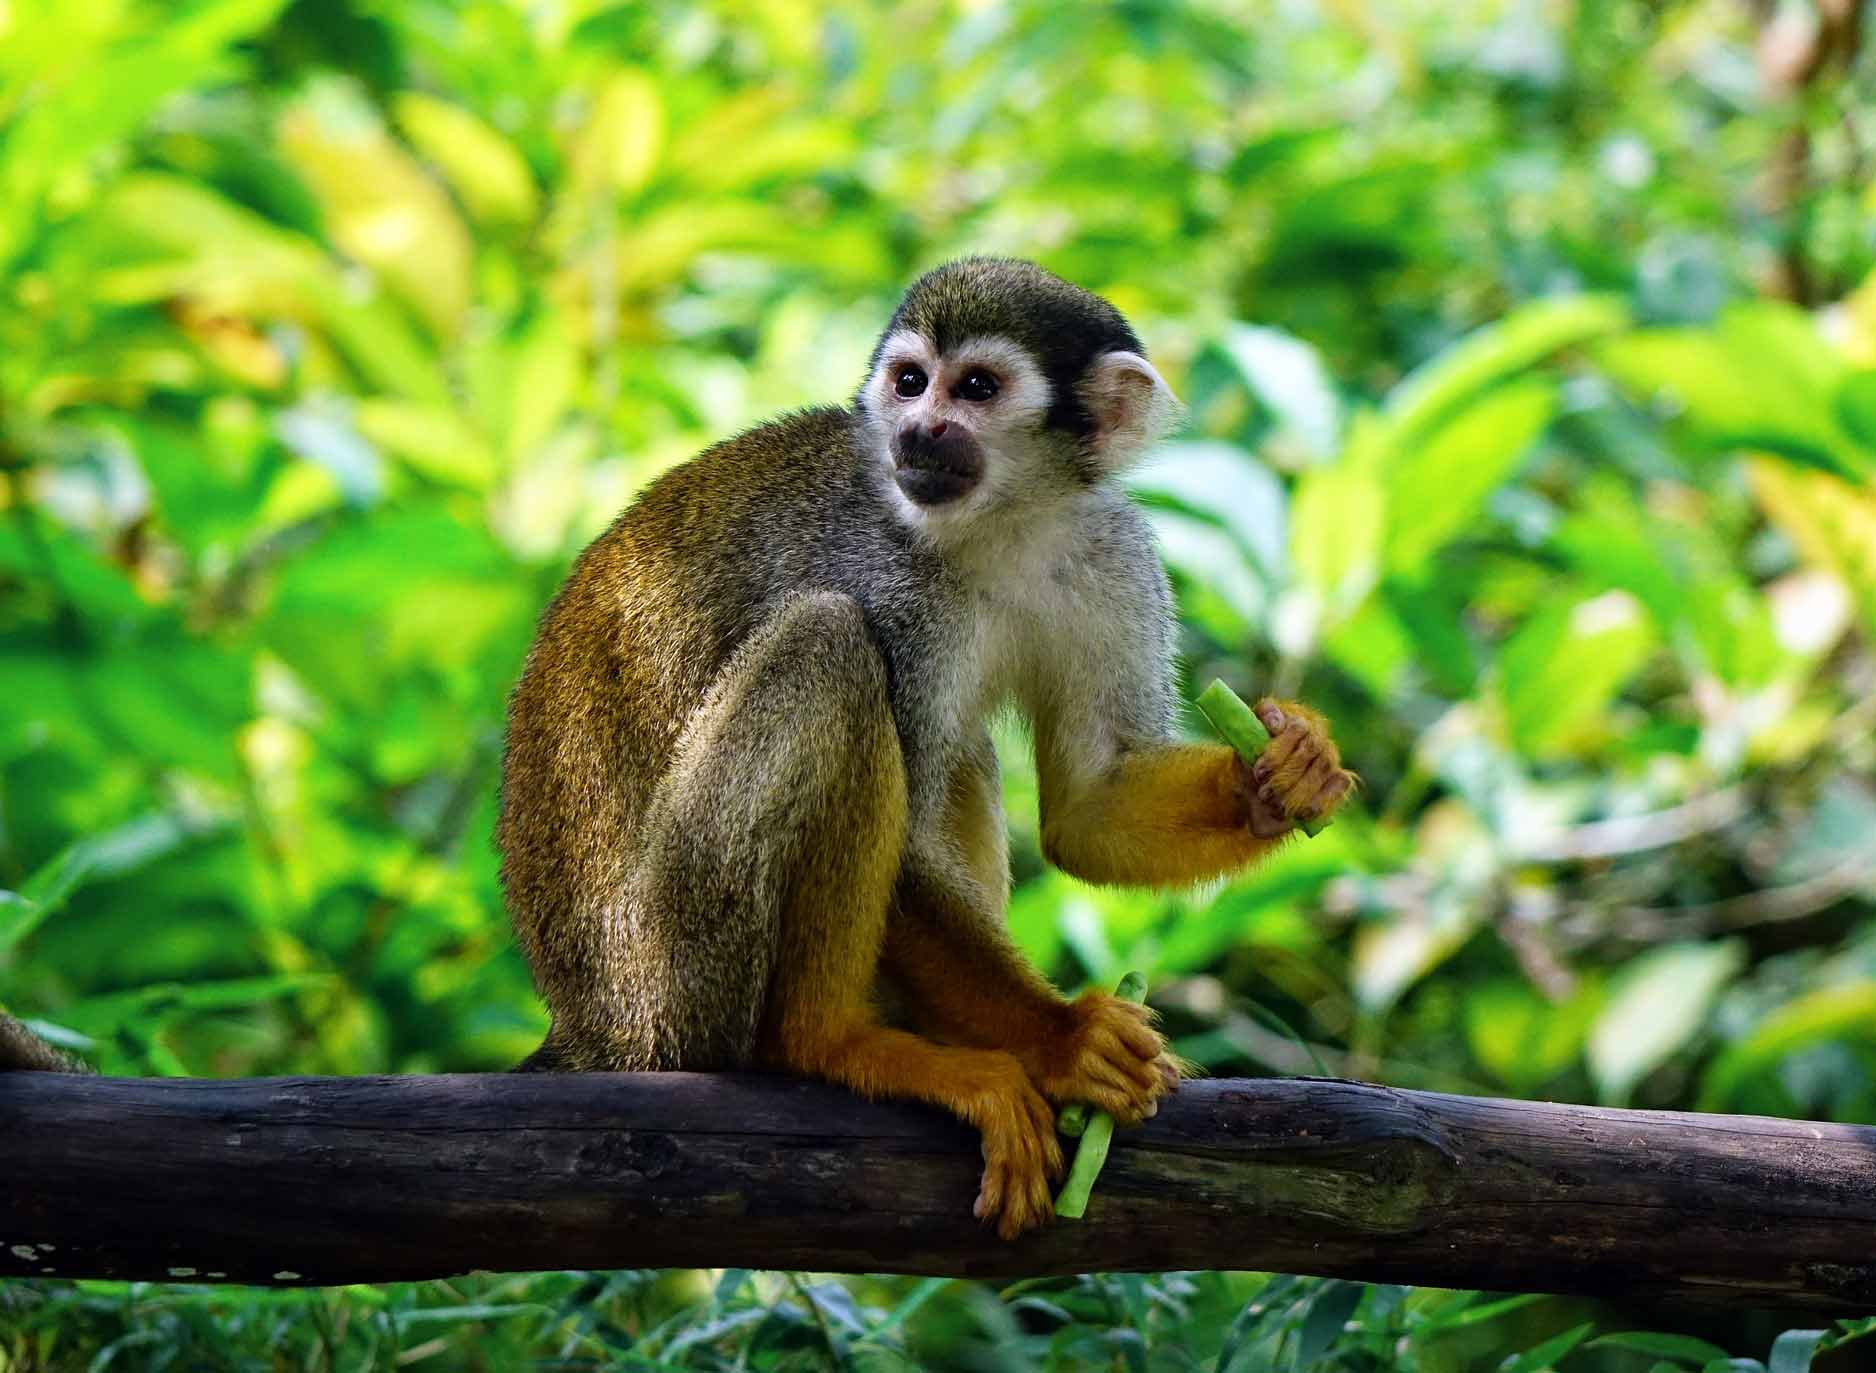 Monkey o a tree eating, Thailand, Cultural Differences